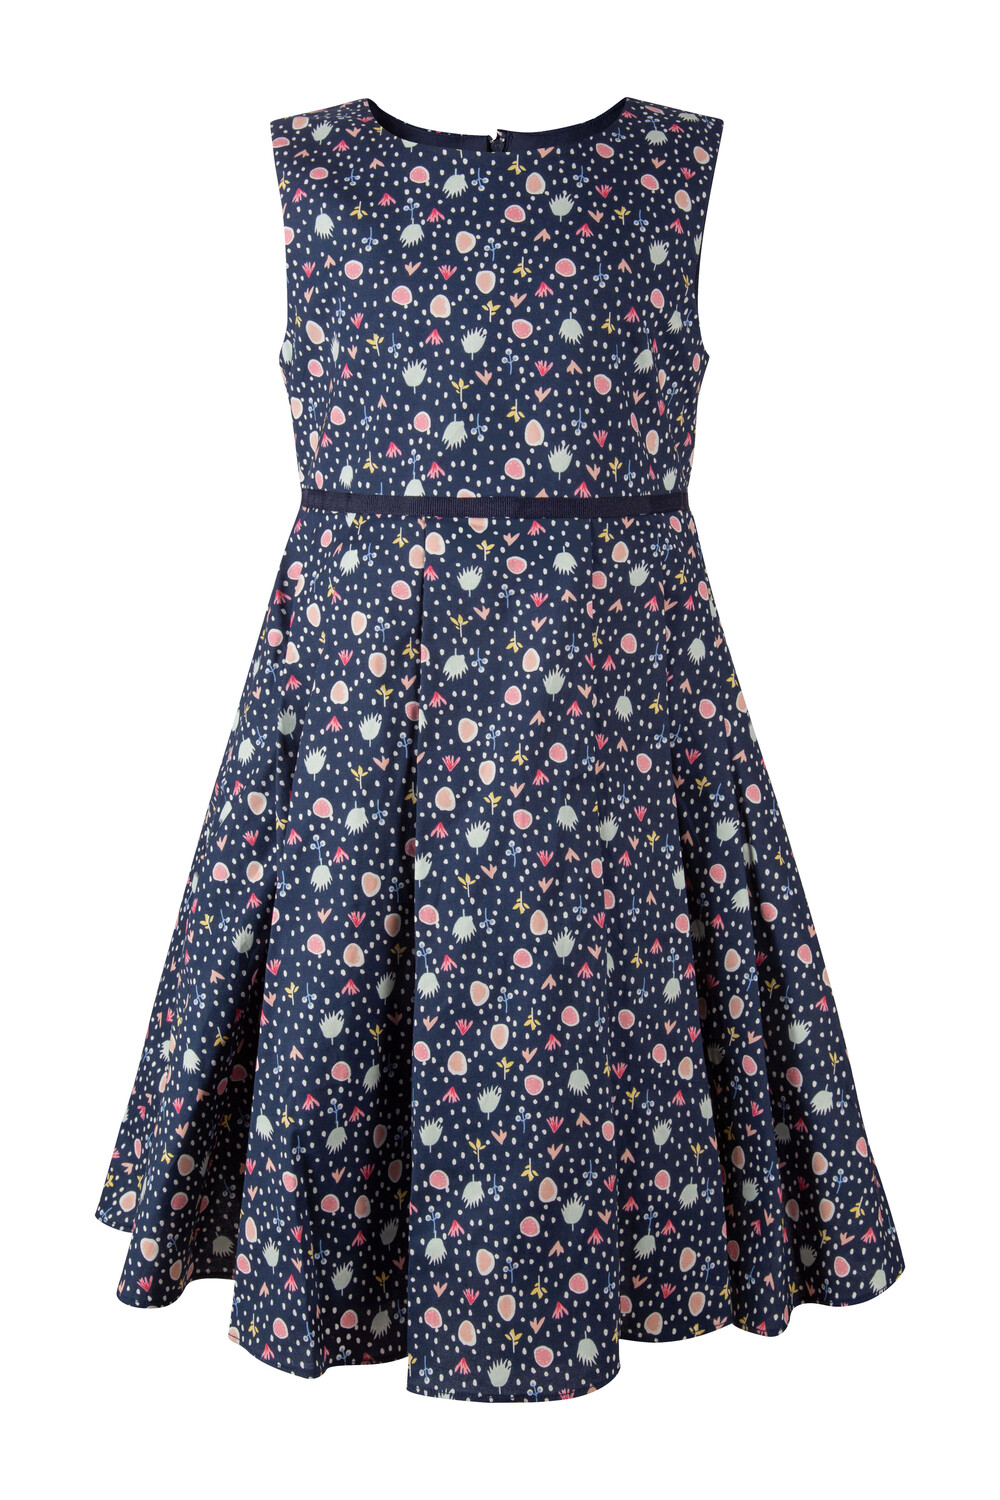 Kleid 116 navy happy girls by Eisend